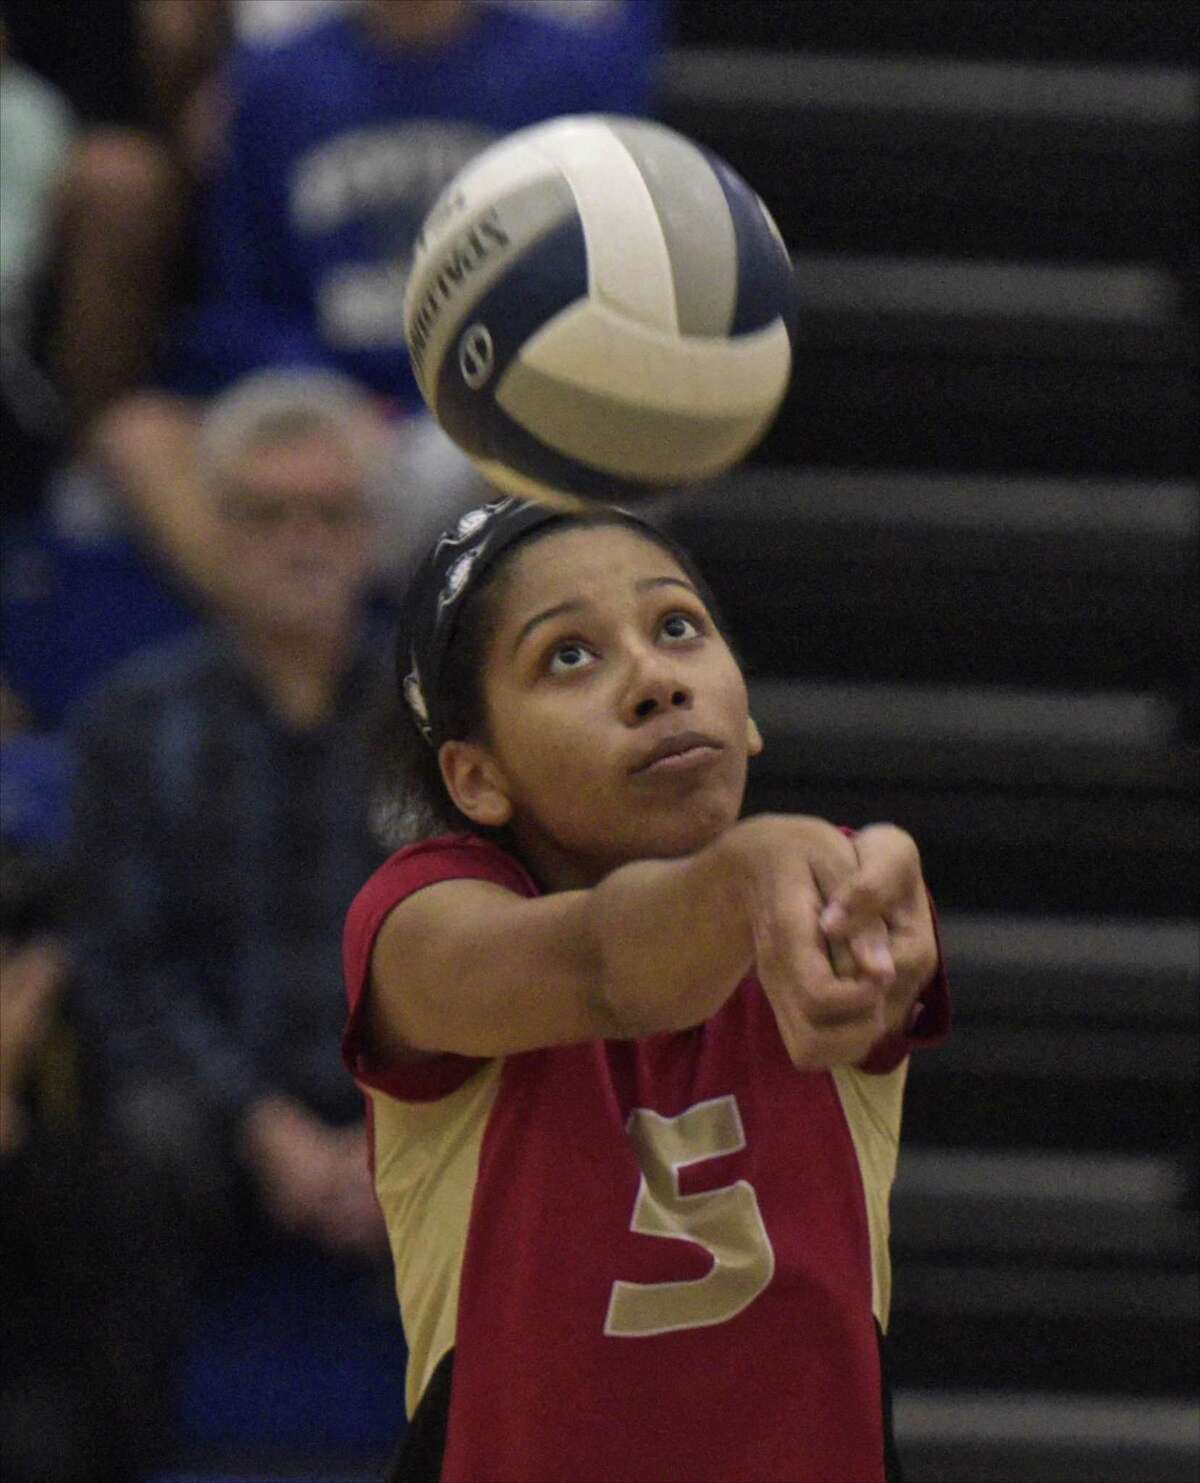 Stratford's Sa'noma Smart (5) bumps the ball in the girls volleyball match between Stratford and Newtown high schools, Wednesday afternoon, October 11, 2017, at Newtown High School, in Newtown, Conn.